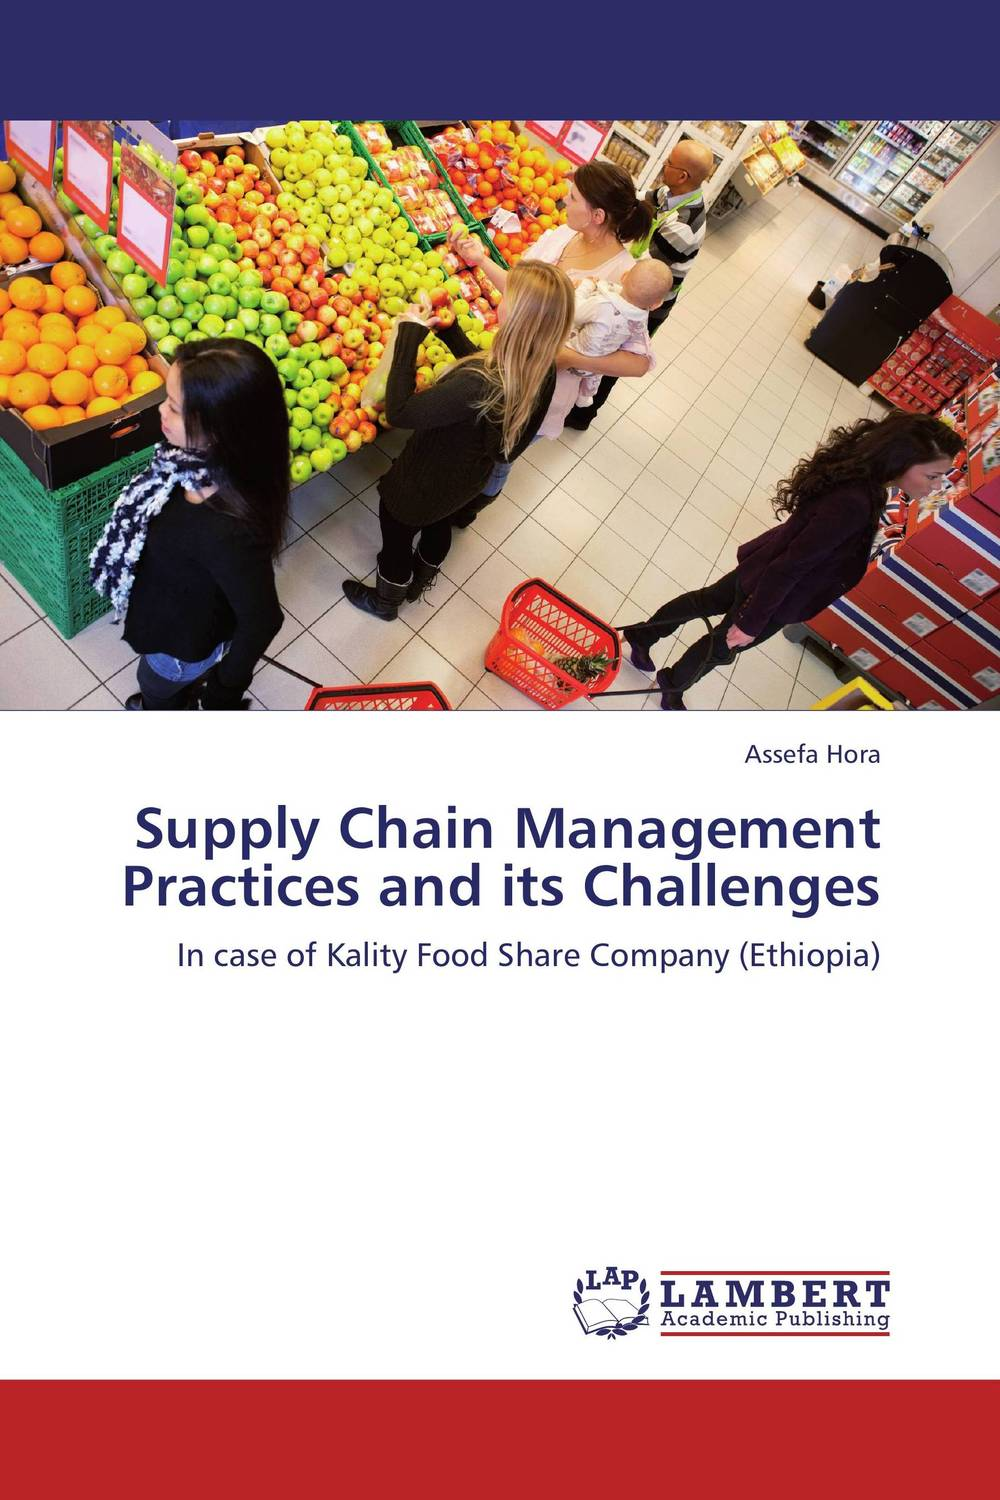 Supply Chain Management Practices and its Challenges dairy supply chain management